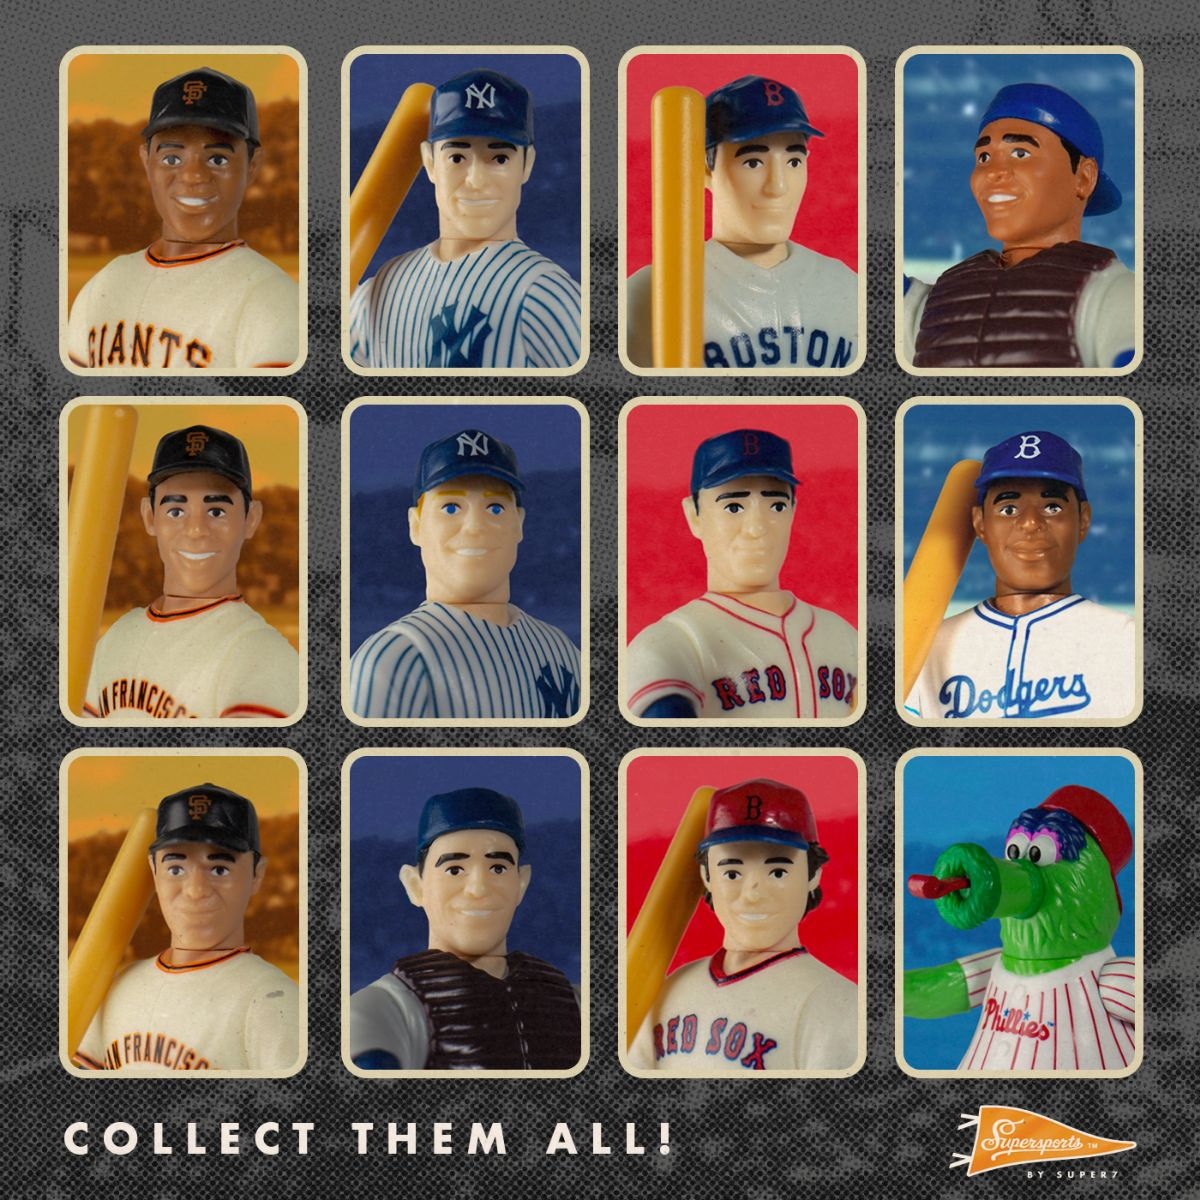 Super7 Supersports Line Launches Today With MLB Figures